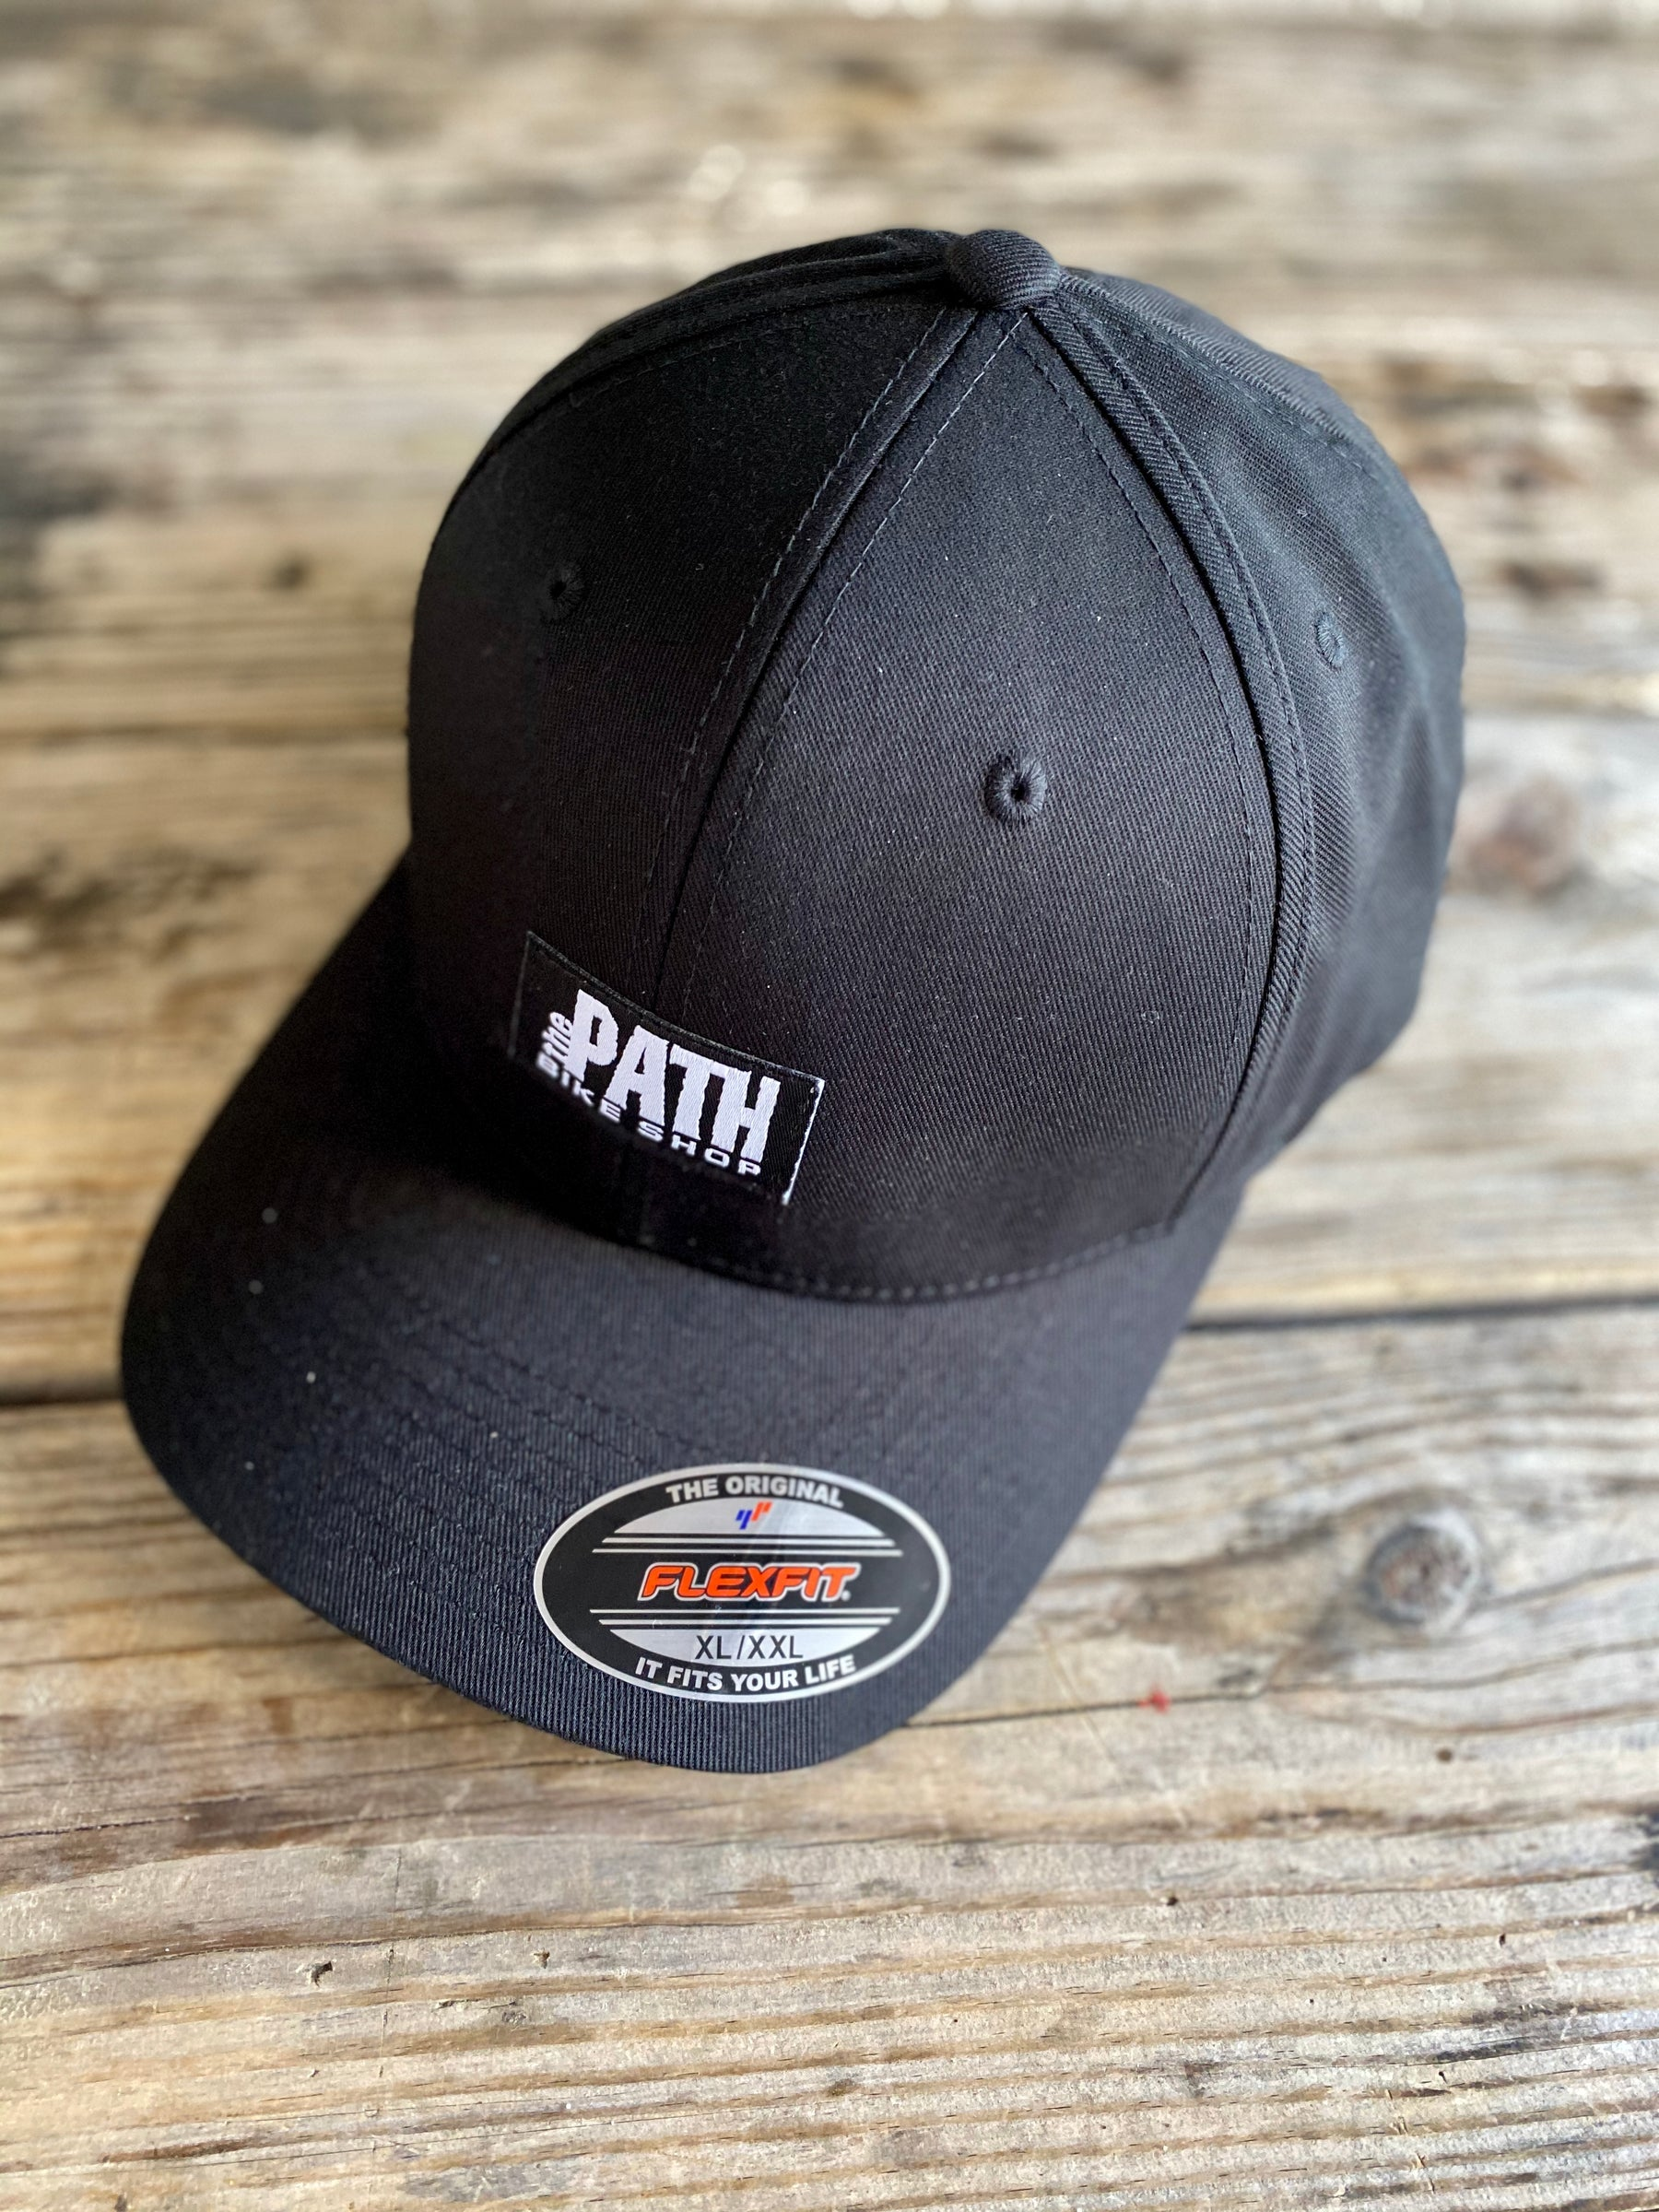 path bike shop logo flex fit hat